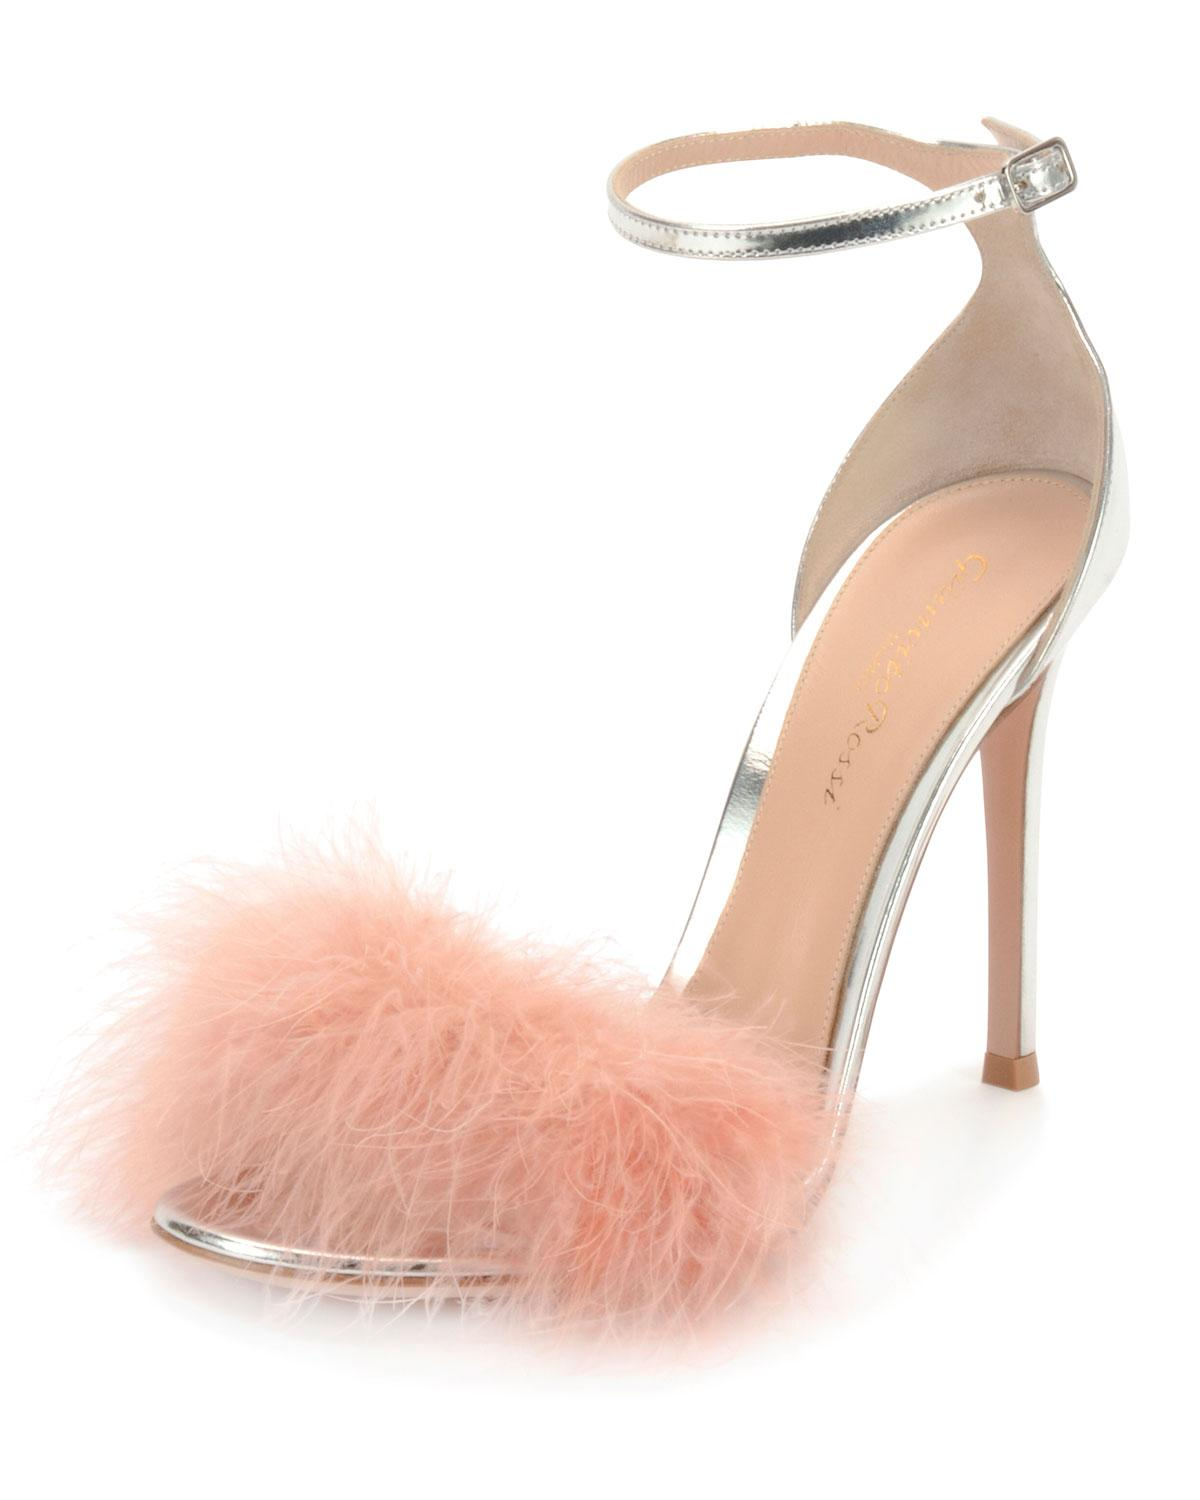 247444ad8d2a Lyst - Gianvito Rossi Marabou Metallic Feather Sandals in Metallic ...